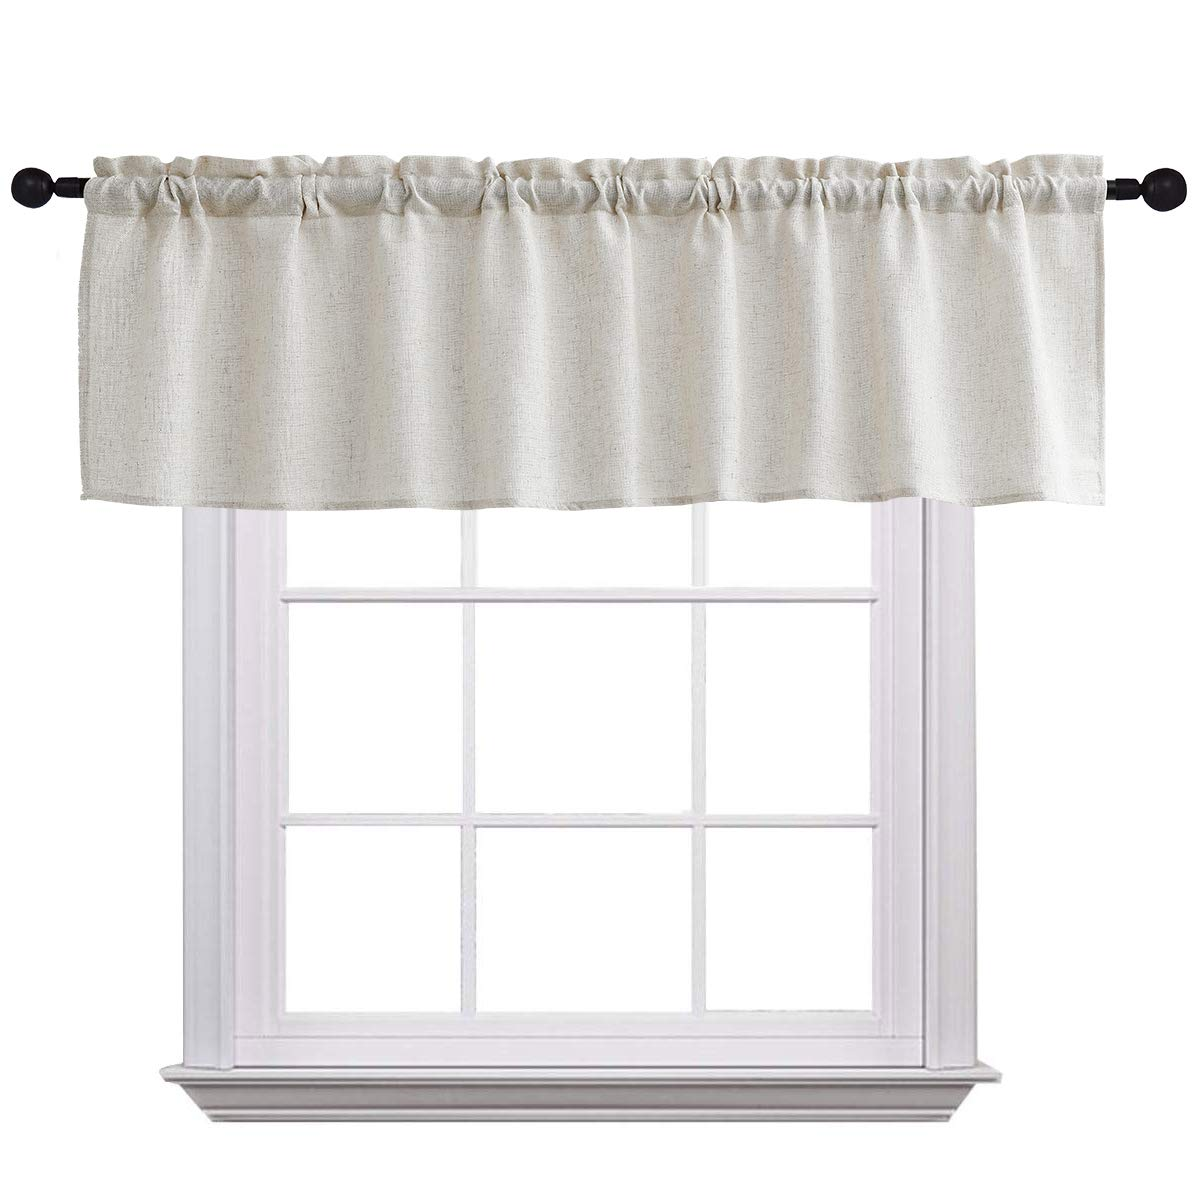 Curtain Valances for Windows Burlap Linen Window Curtains for Kitchen Living Dining Room 58 x 15 inches Rod Pocket 1 Valance Crude